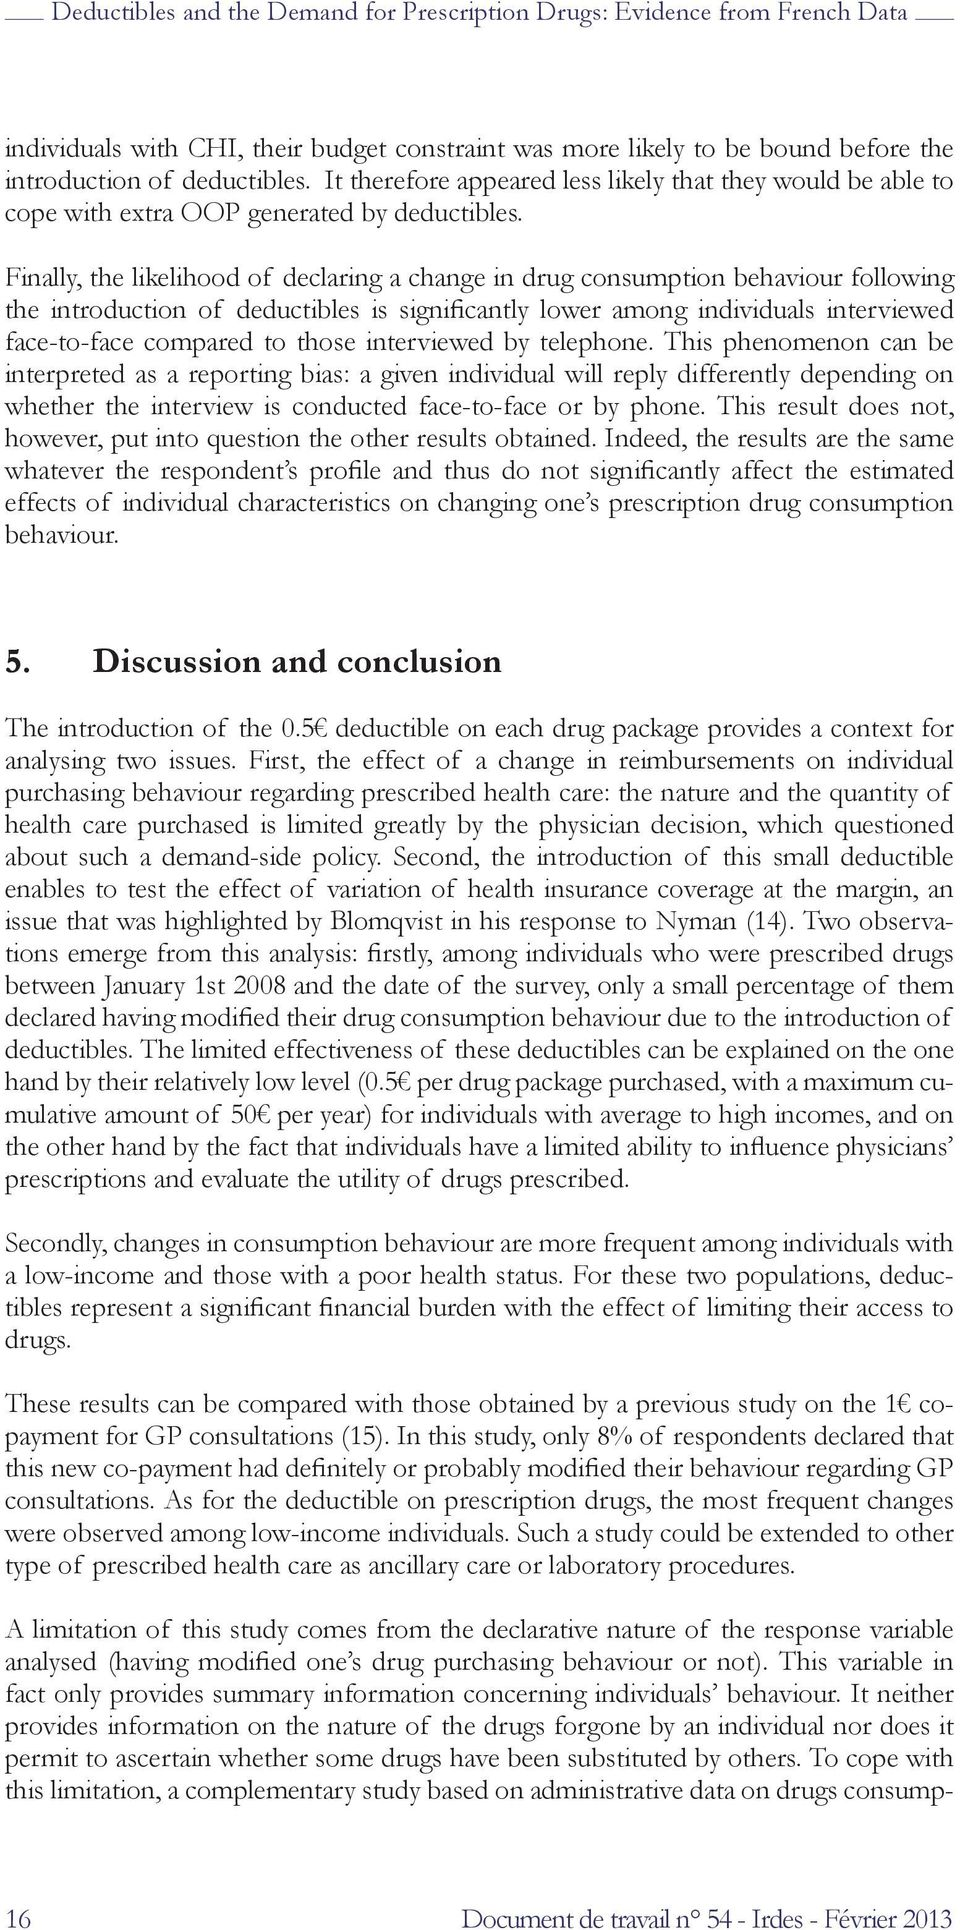 Finally, the likelihood of declaring a change in drug consumption behaviour following the introduction of deductibles is significantly lower among individuals interviewed face-to-face compared to